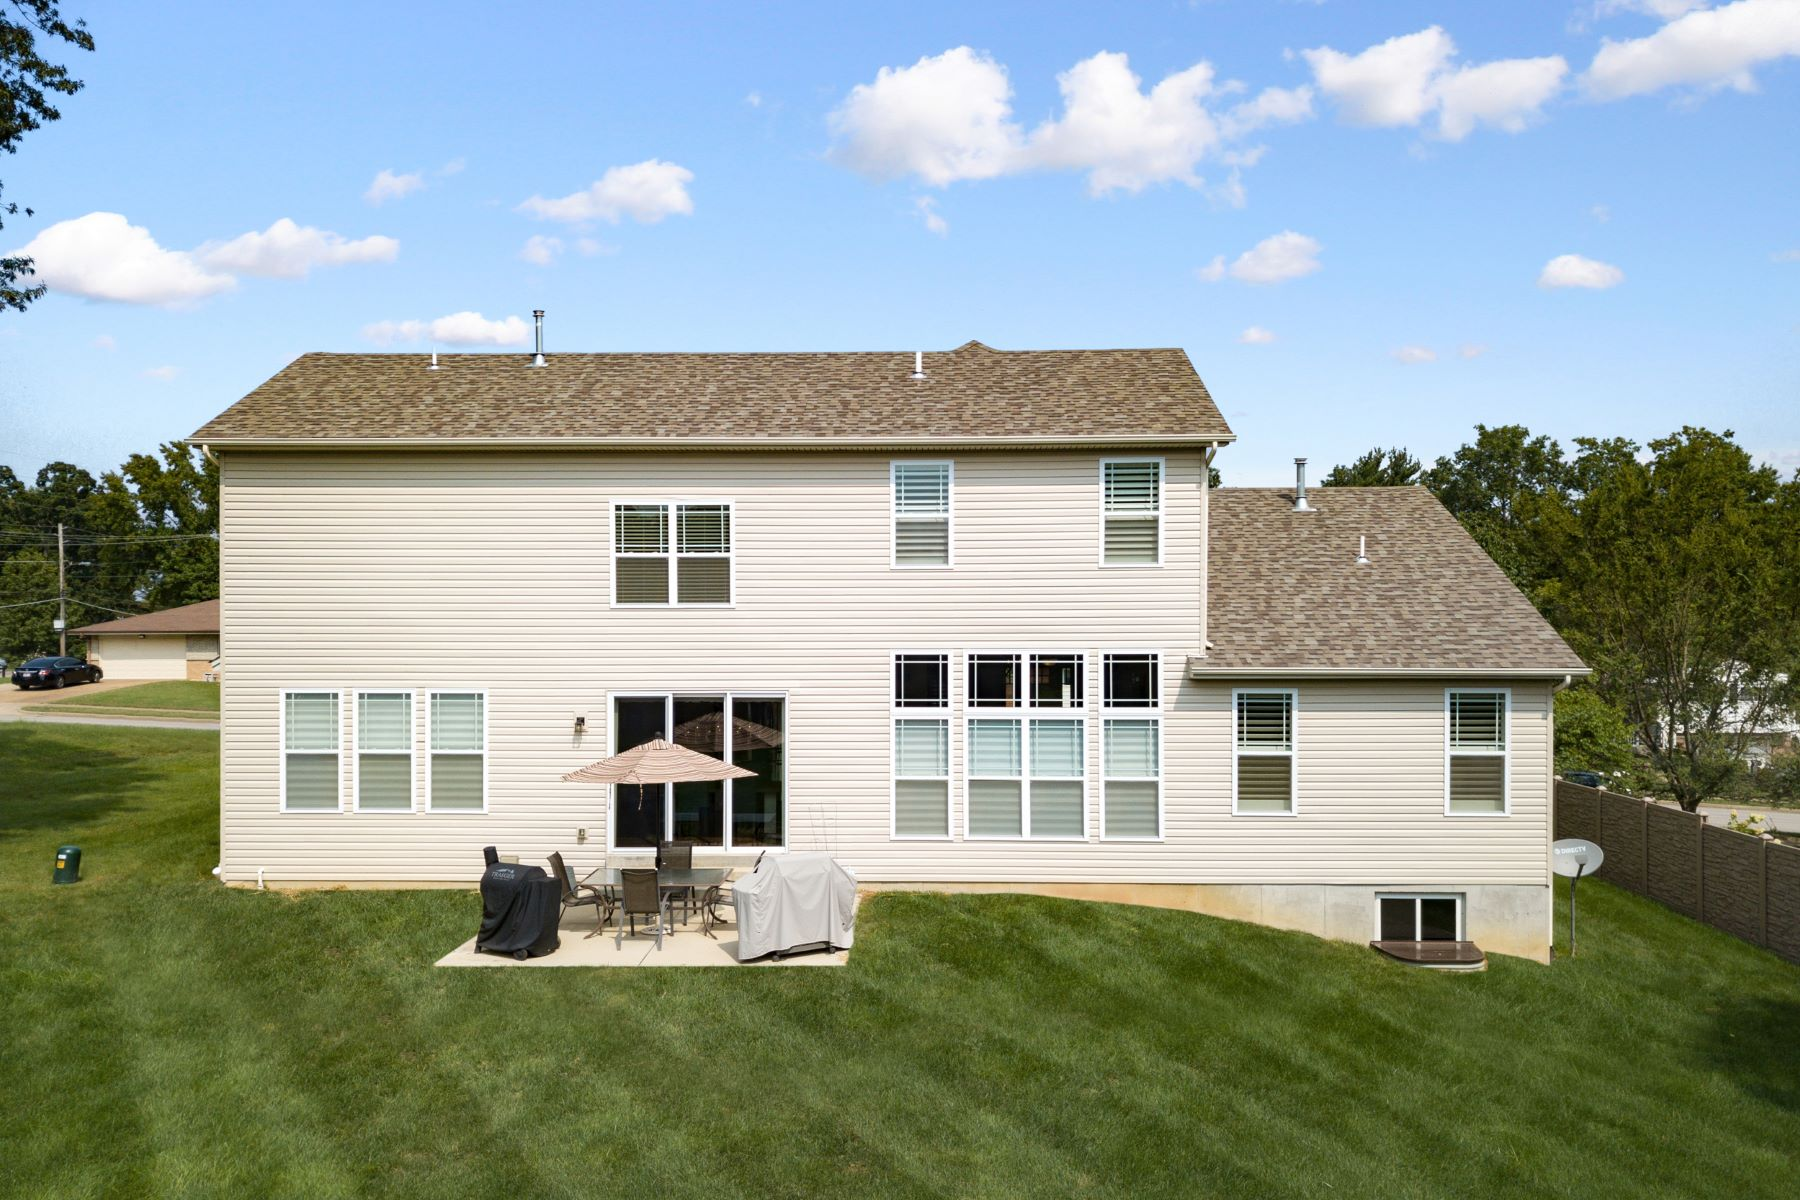 Additional photo for property listing at Fabulous Dream Home in Lindbergh Schools 9550 Garber Road Crestwood, Missouri 63126 United States